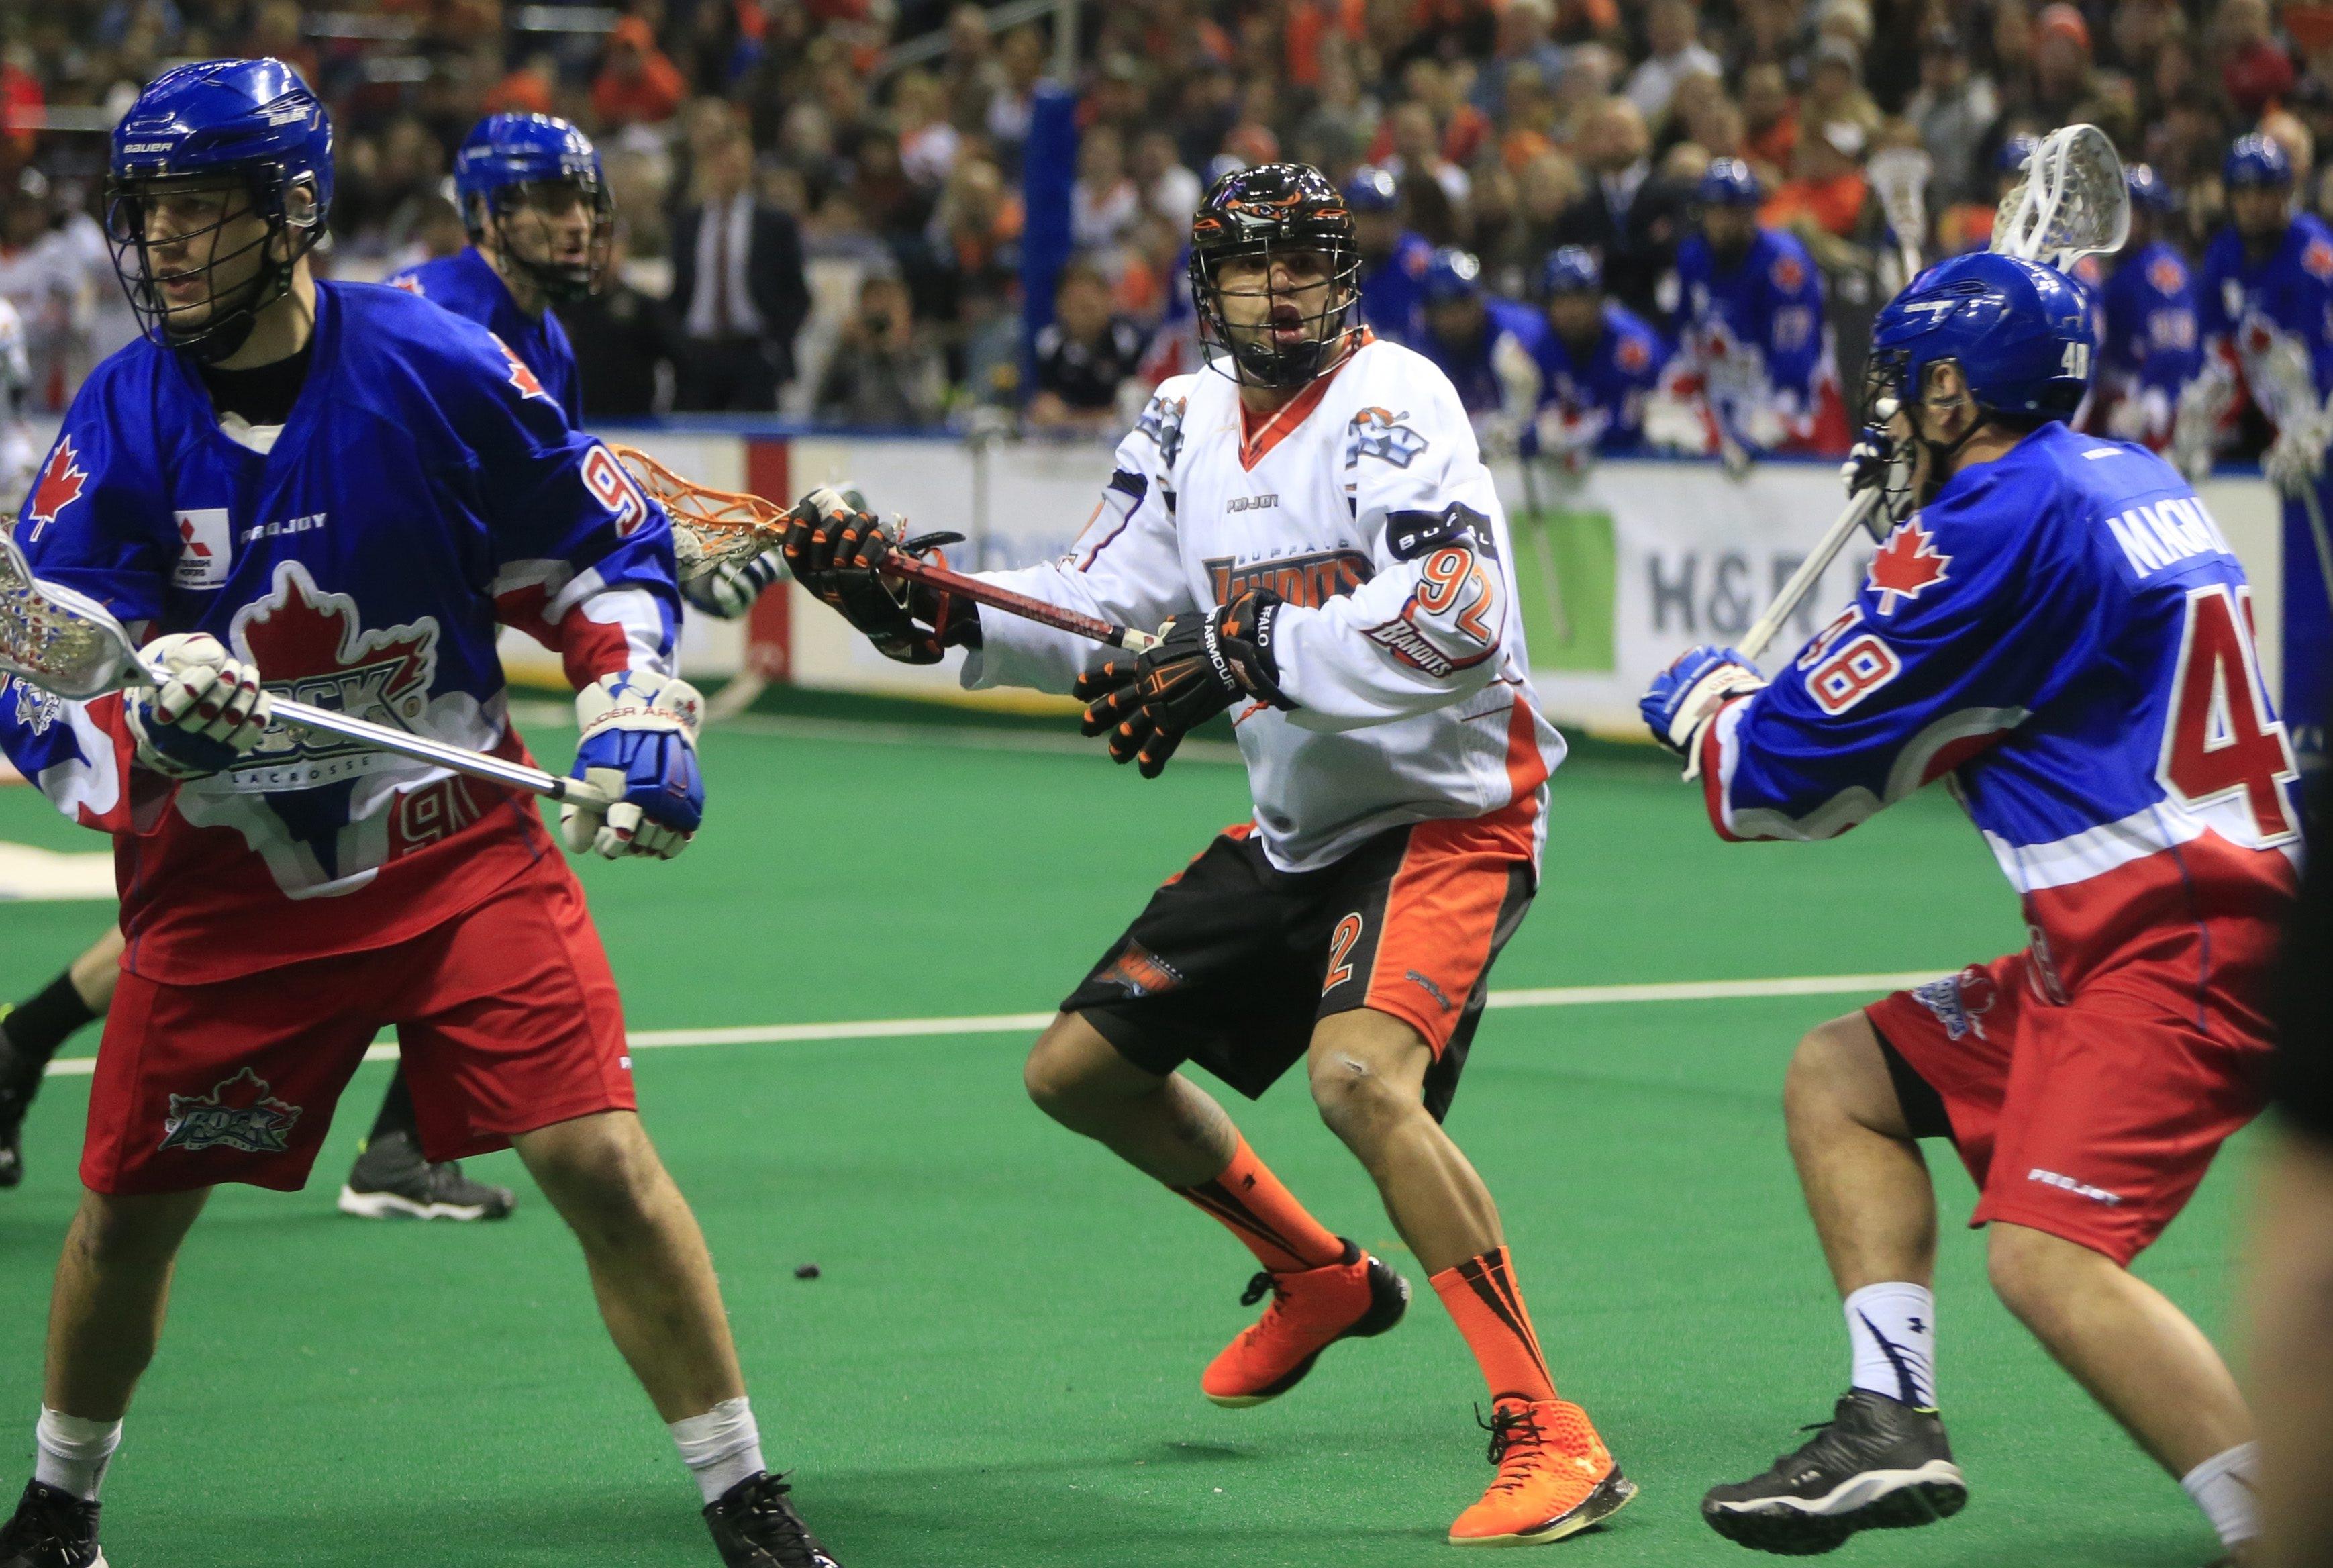 Bandits' forward Dhane Smith was the National Lacrosse League's player of the month for February.